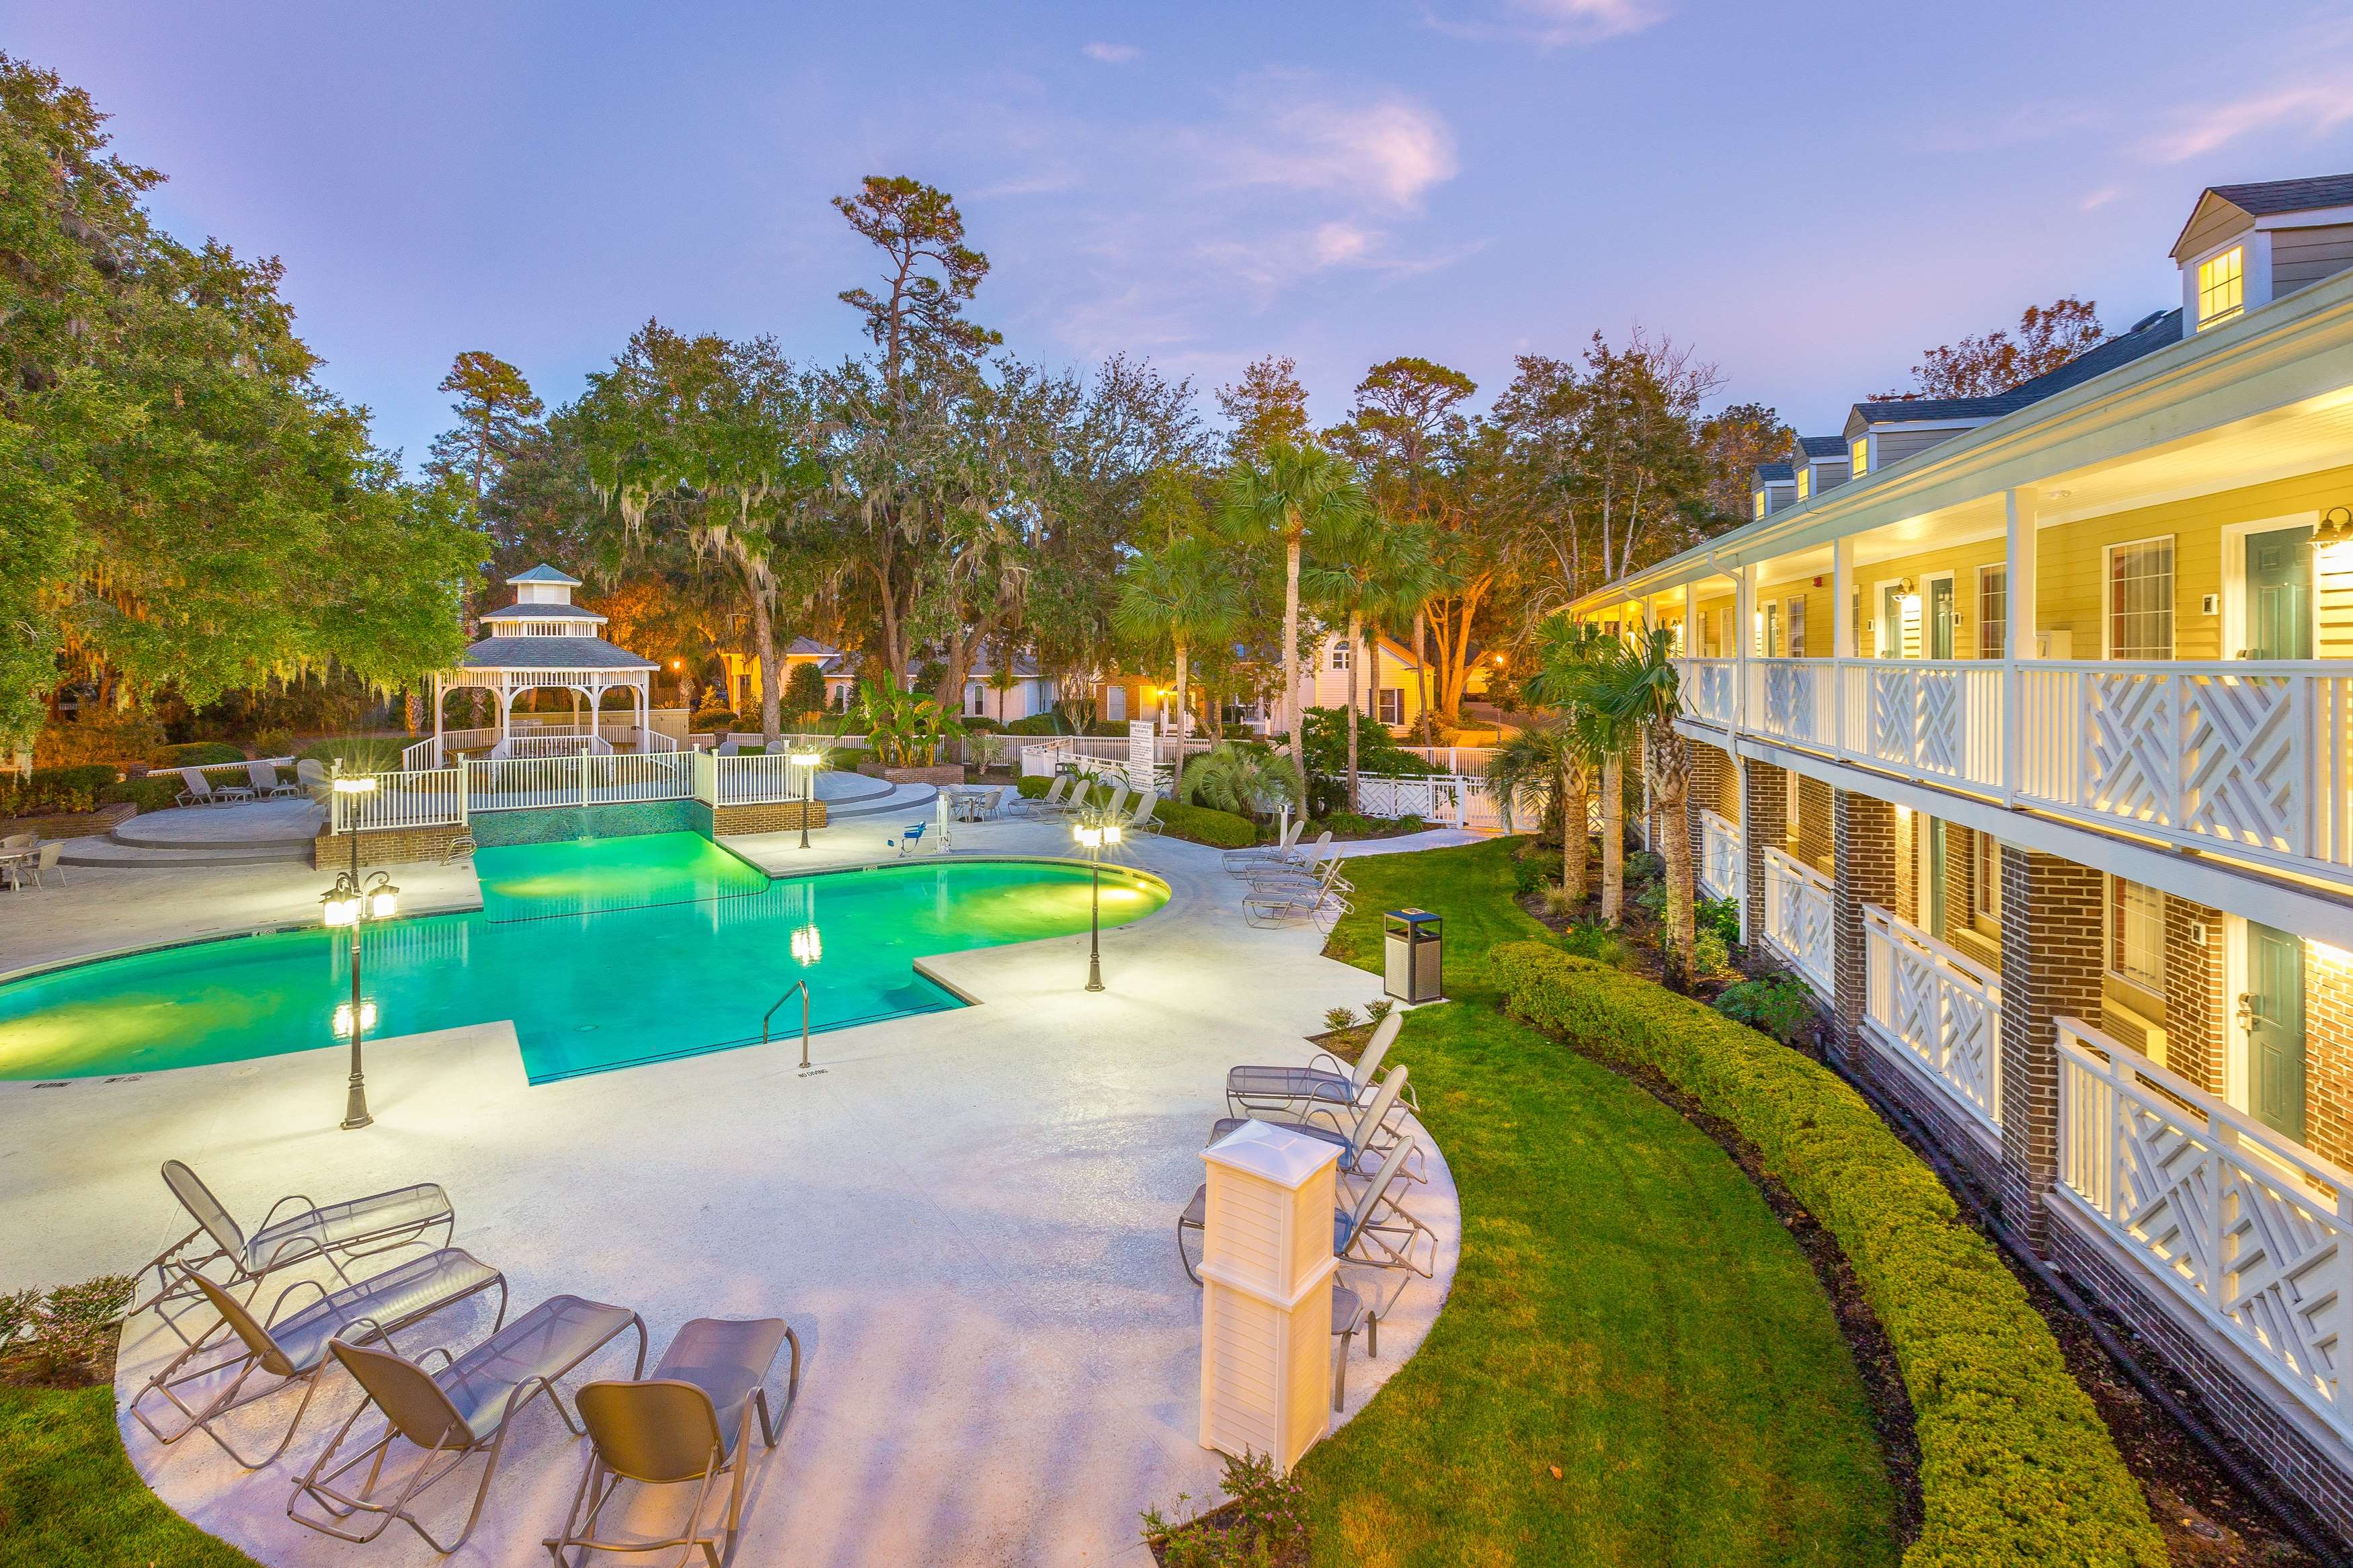 St Simons Island Motels And Hotels